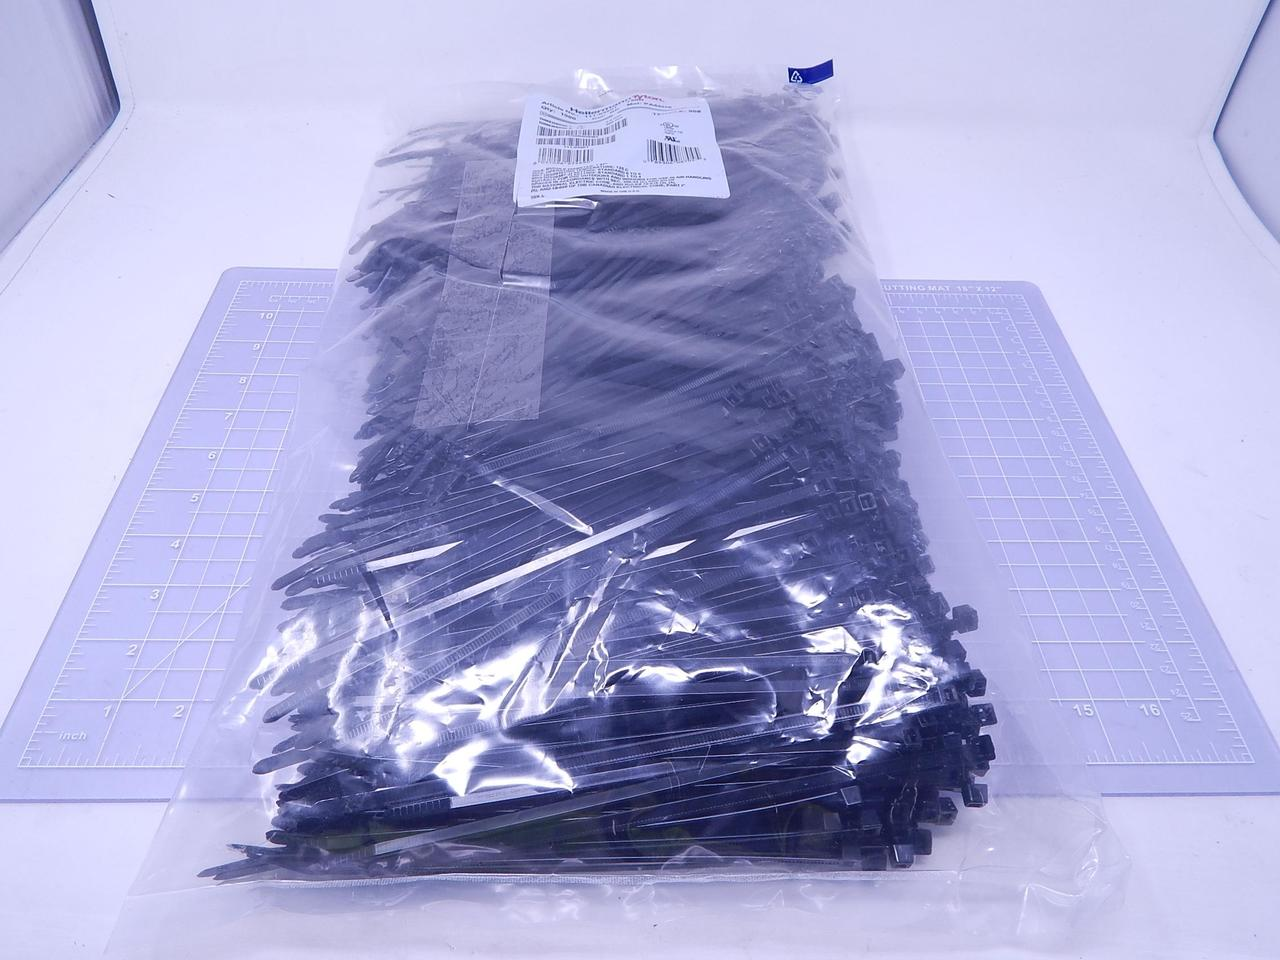 d82490dc6214 Lot of 1000 Hellermann Tyton 111-04901 Cable Ties T113011 - Test ...